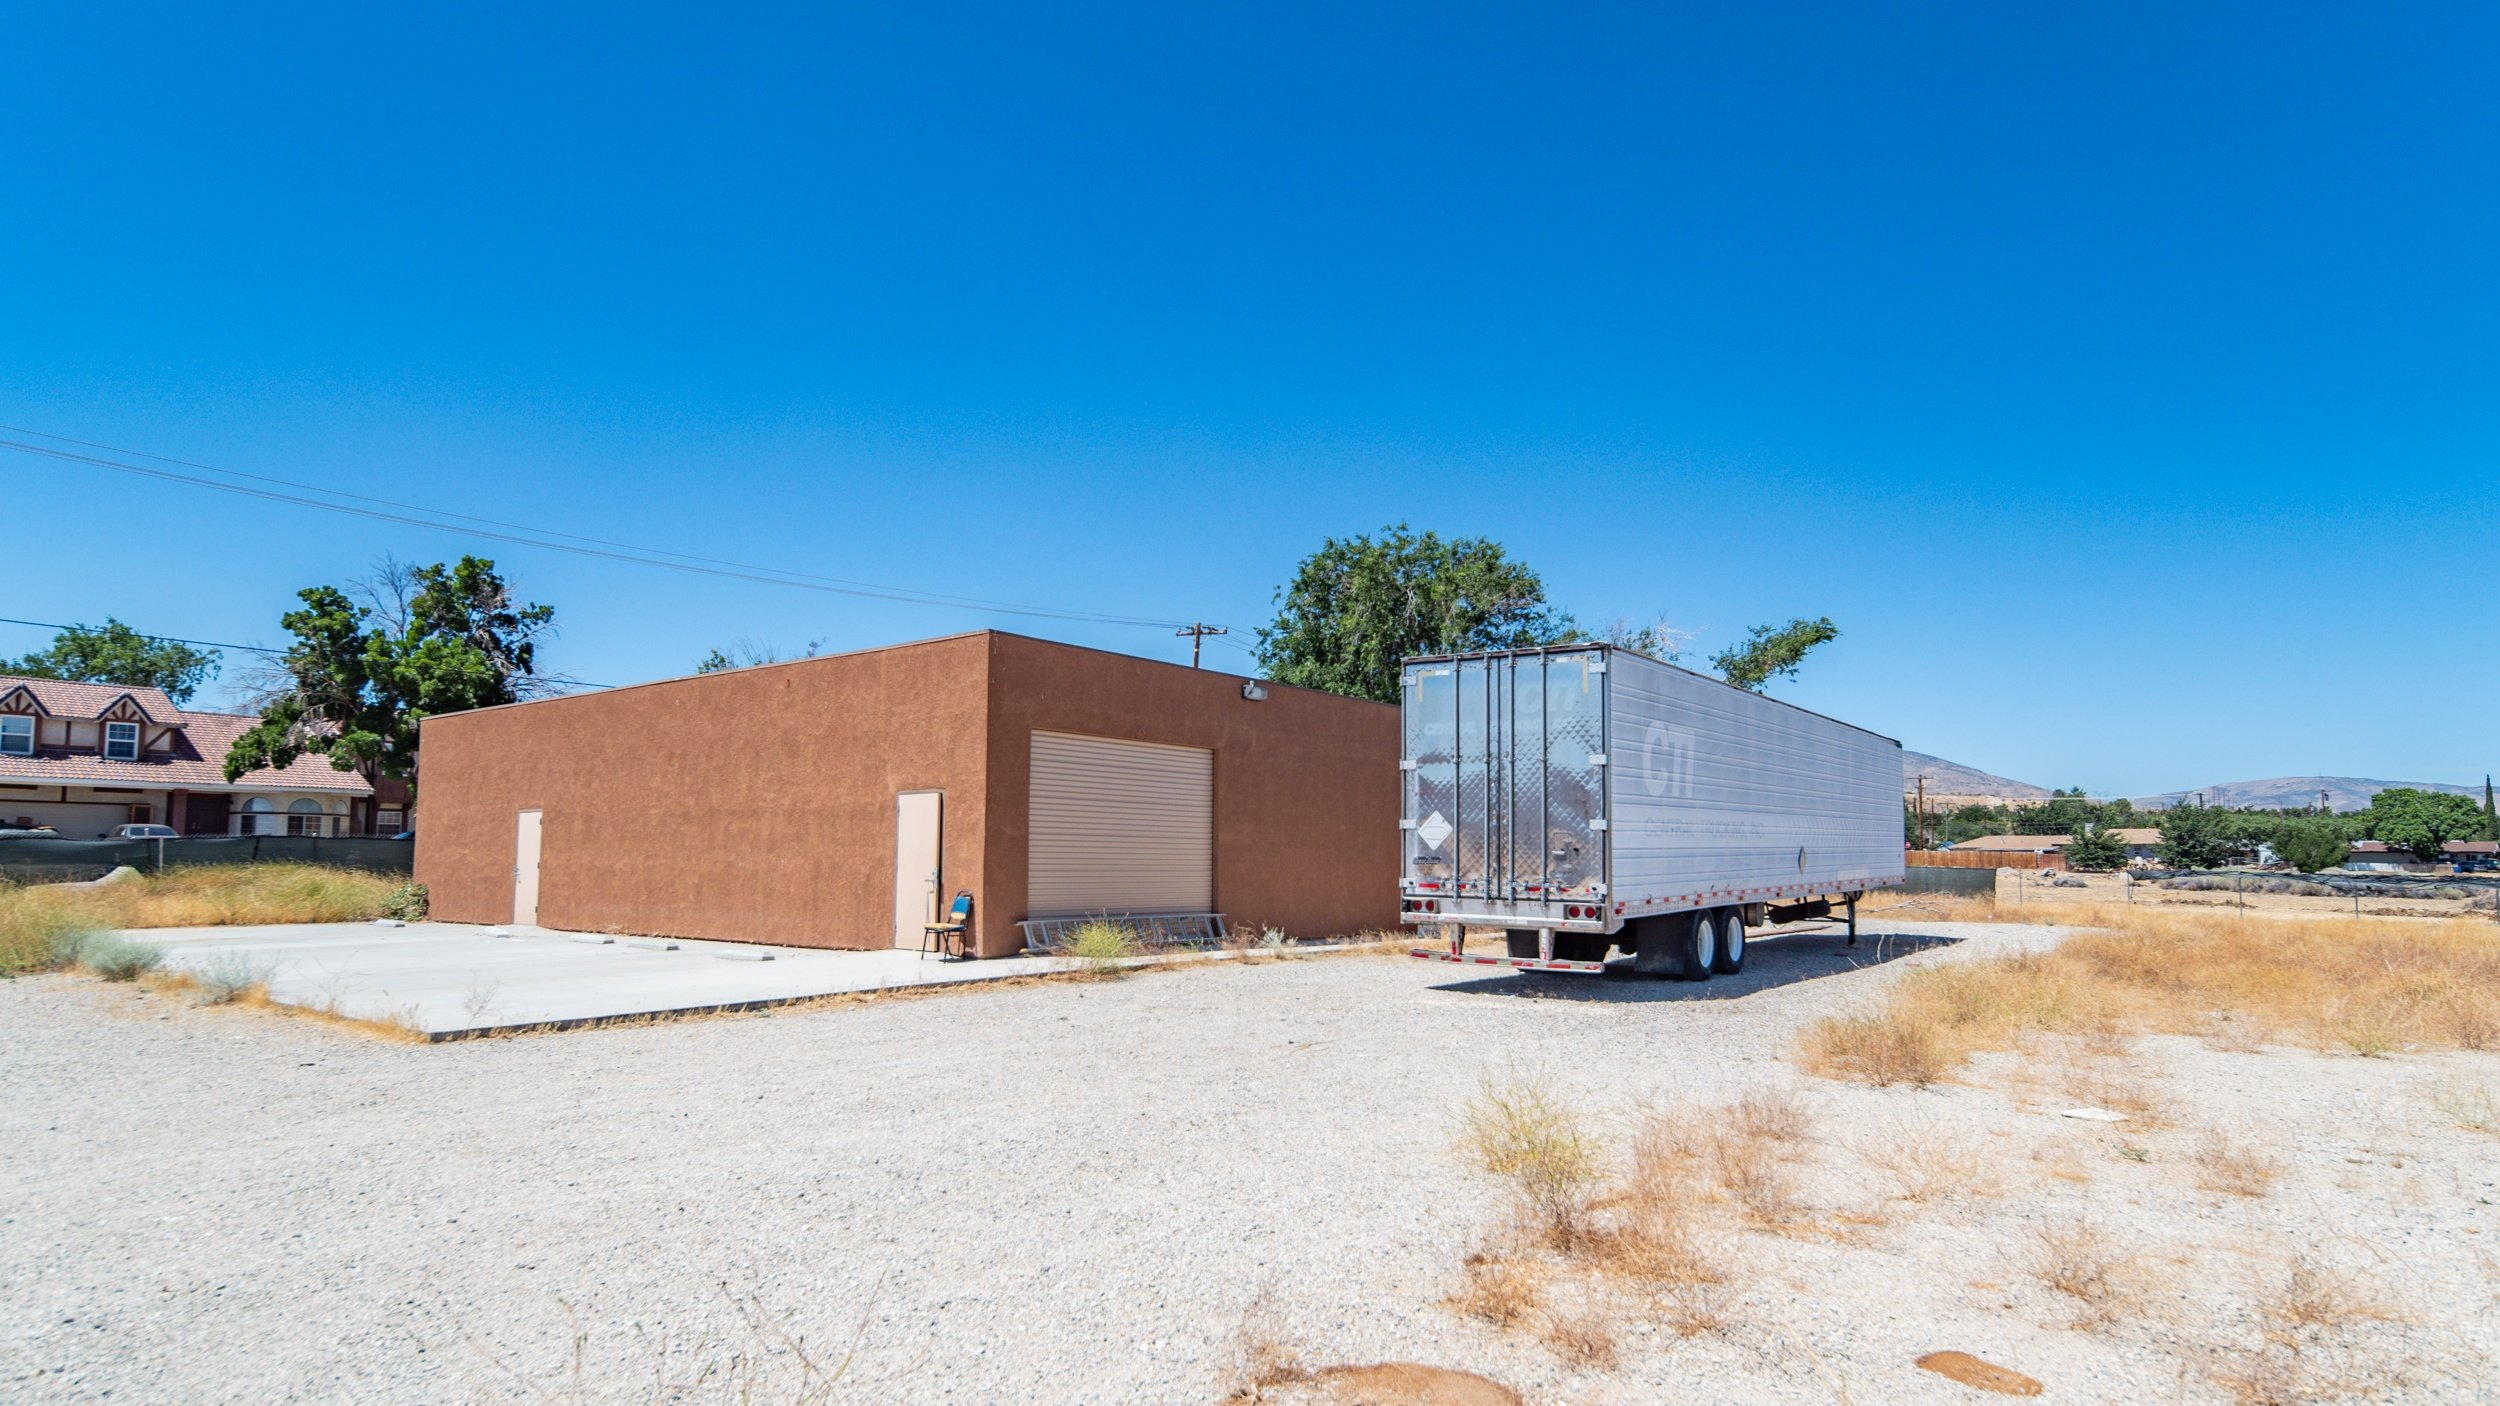 Palmdale Industrial Real Estate Building One